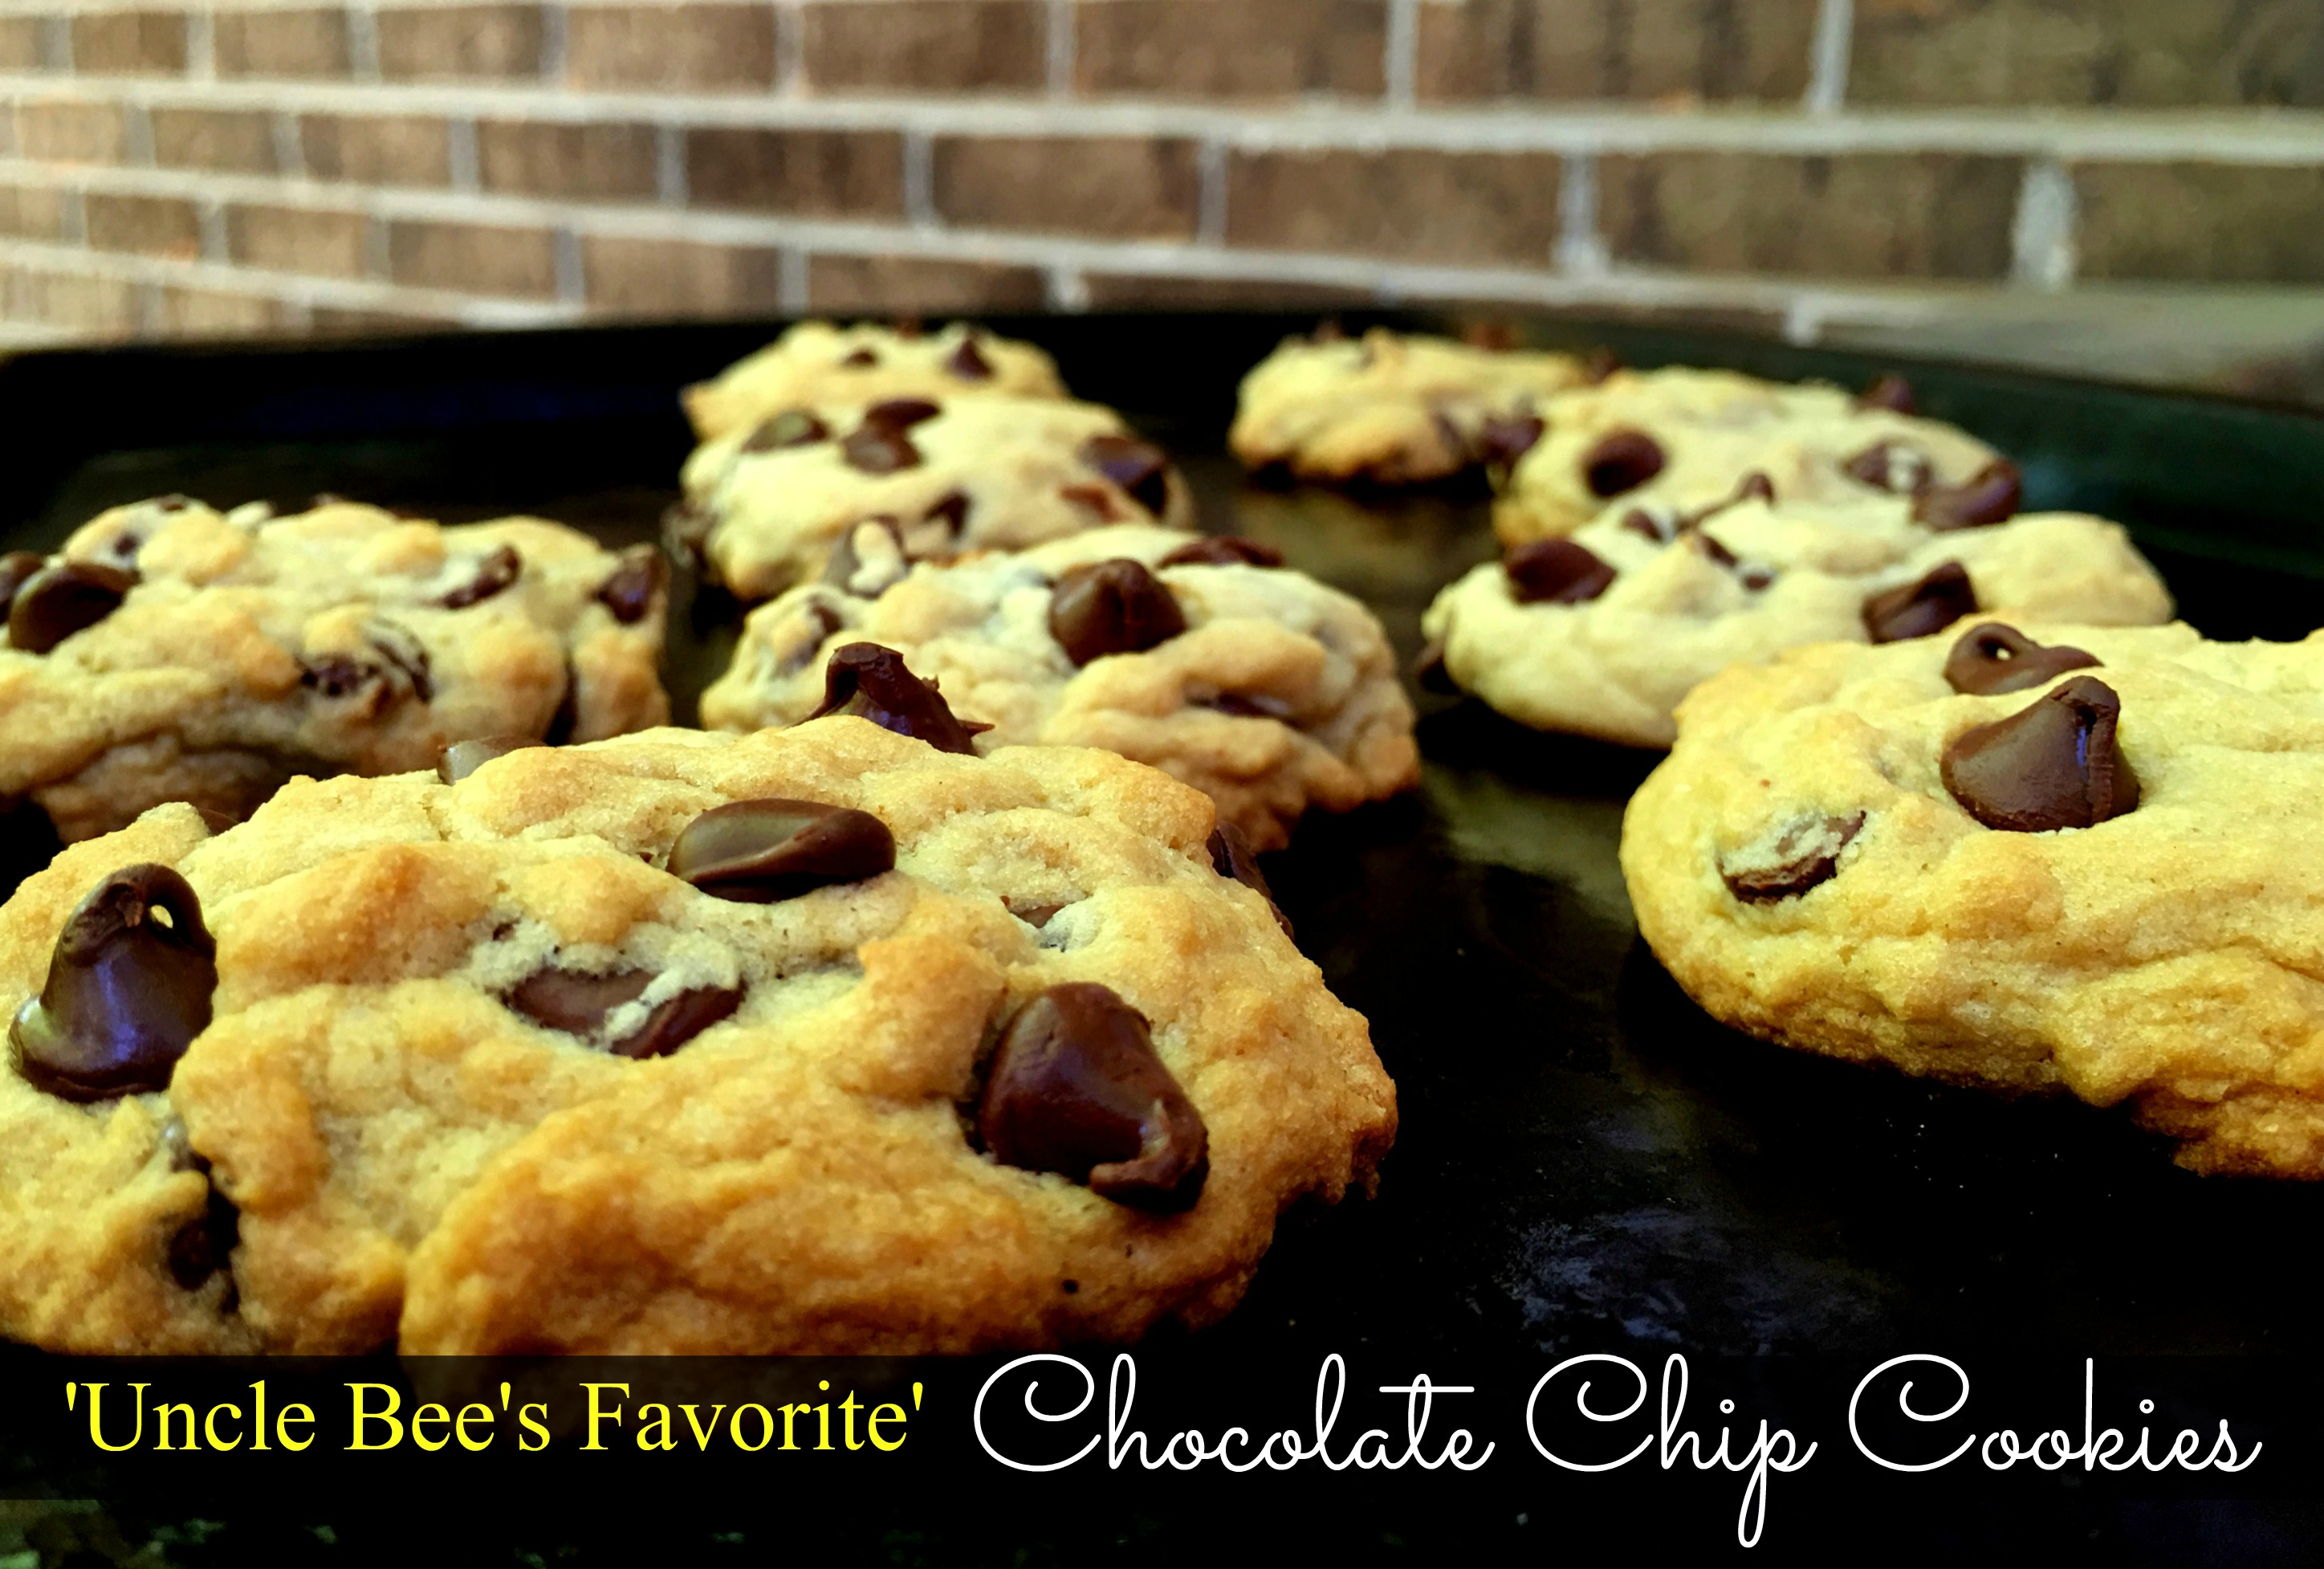 Uncle Bee's 'Famous' Chocolate Chip Cookies